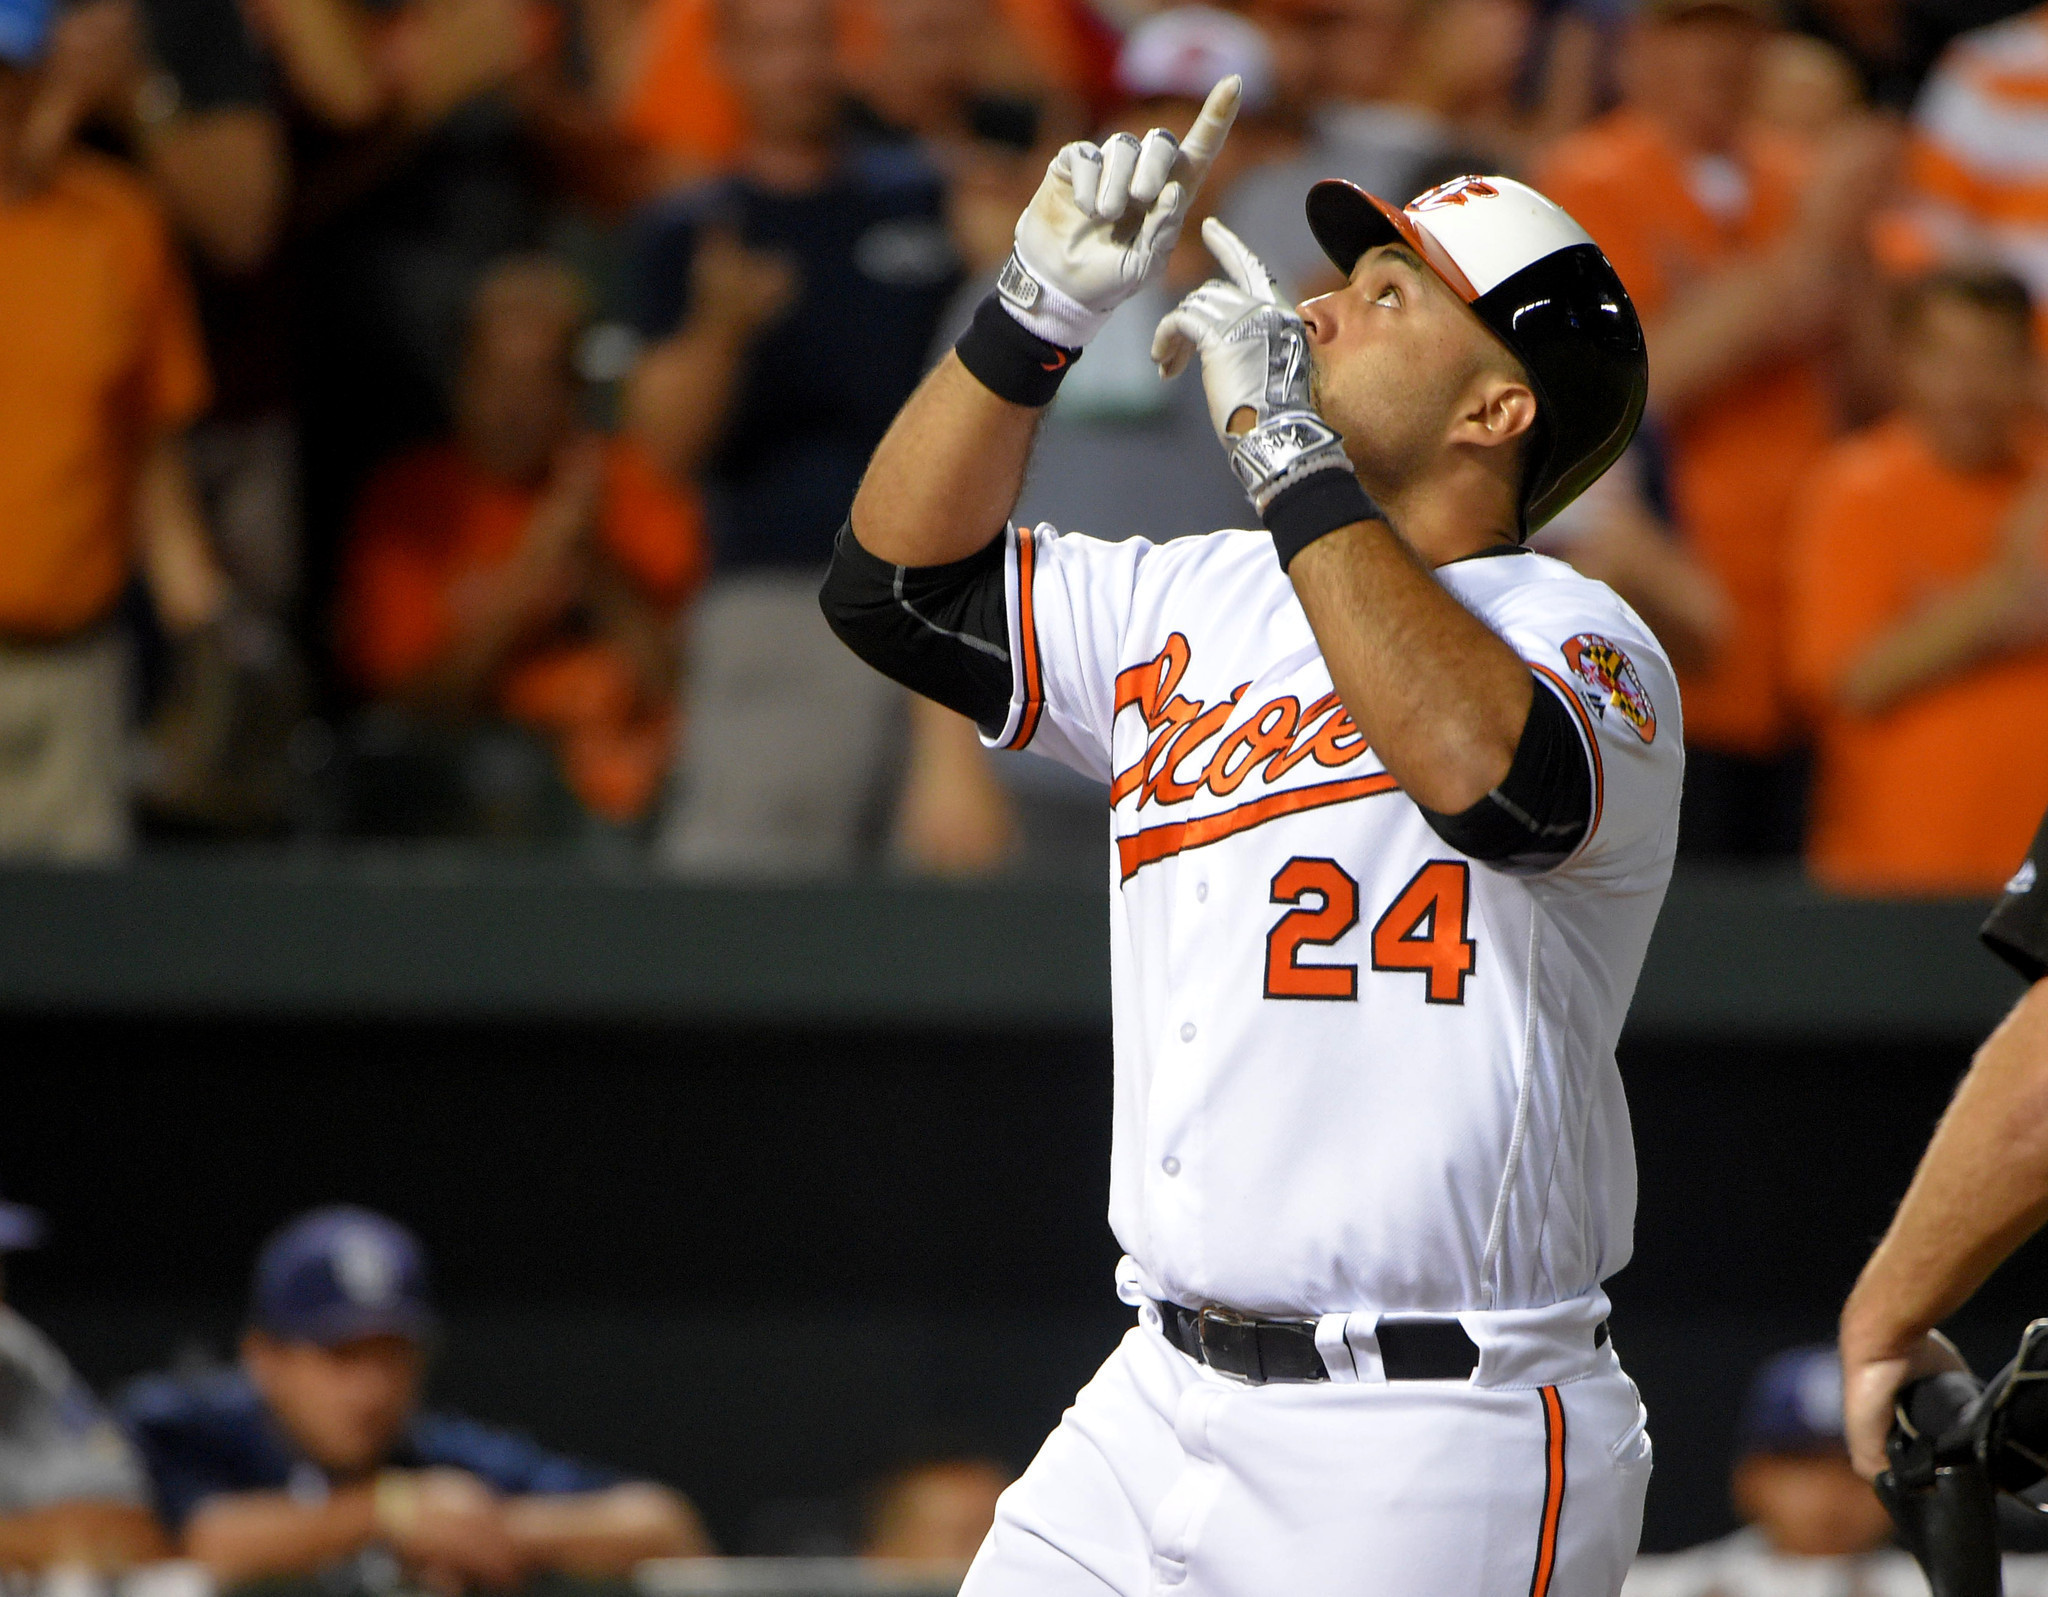 Bal-orioles-pedro-alvarez-streaking-as-lineup-opportunities-could-dry-up-20160621